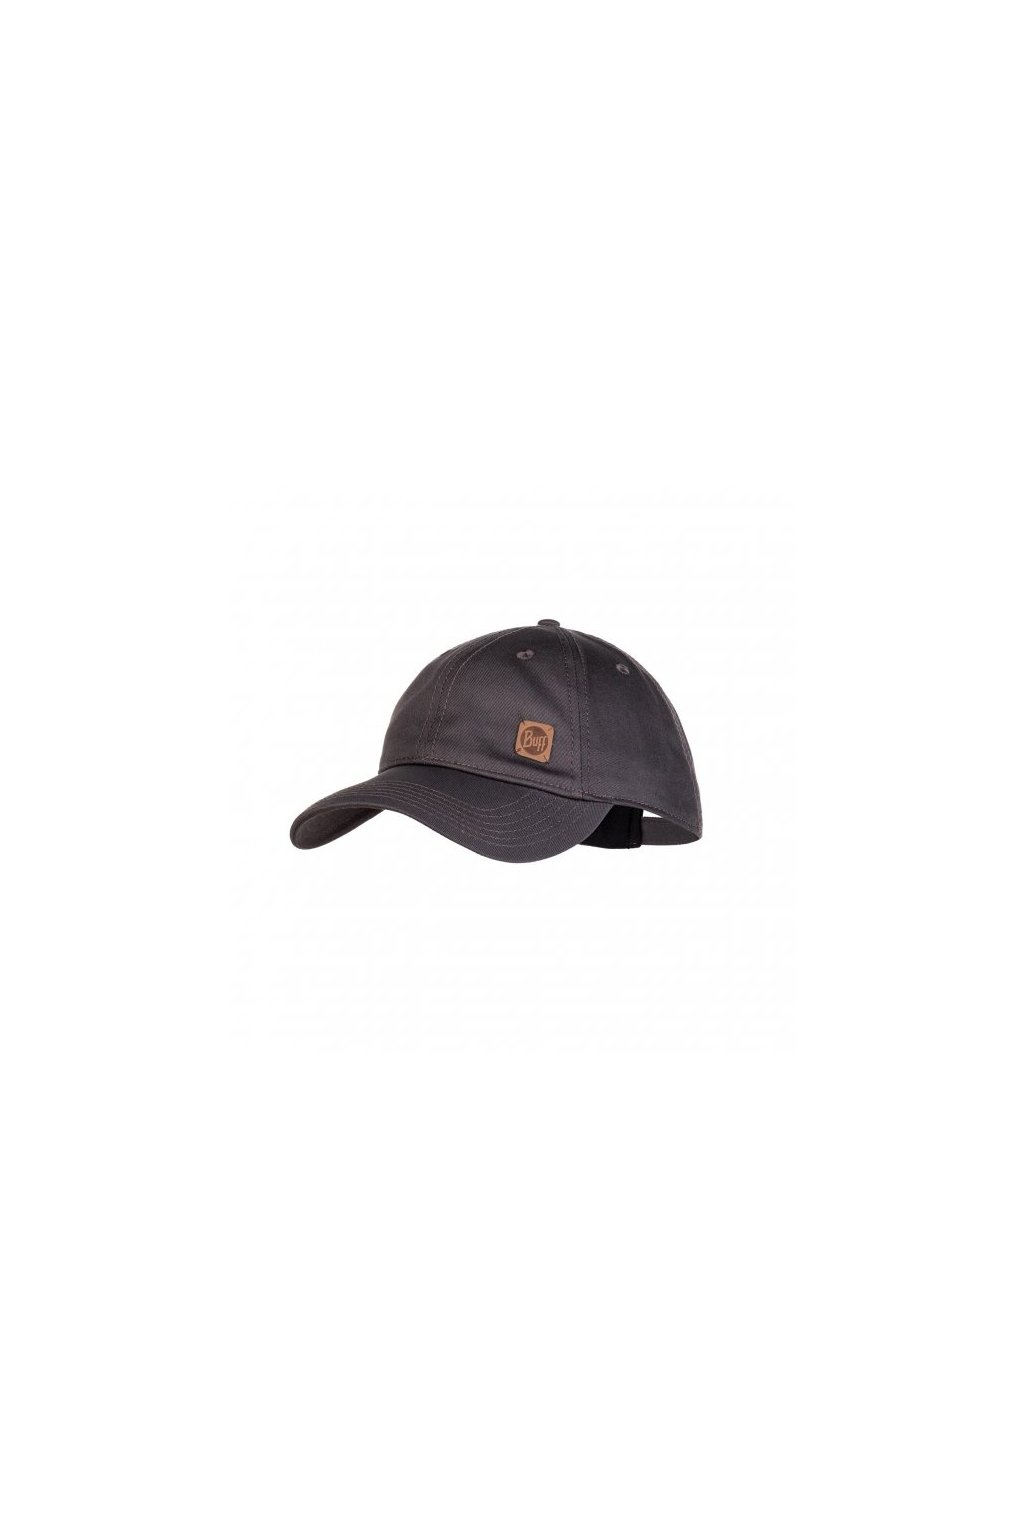 baseball cap solid pewter grey 1171979061000